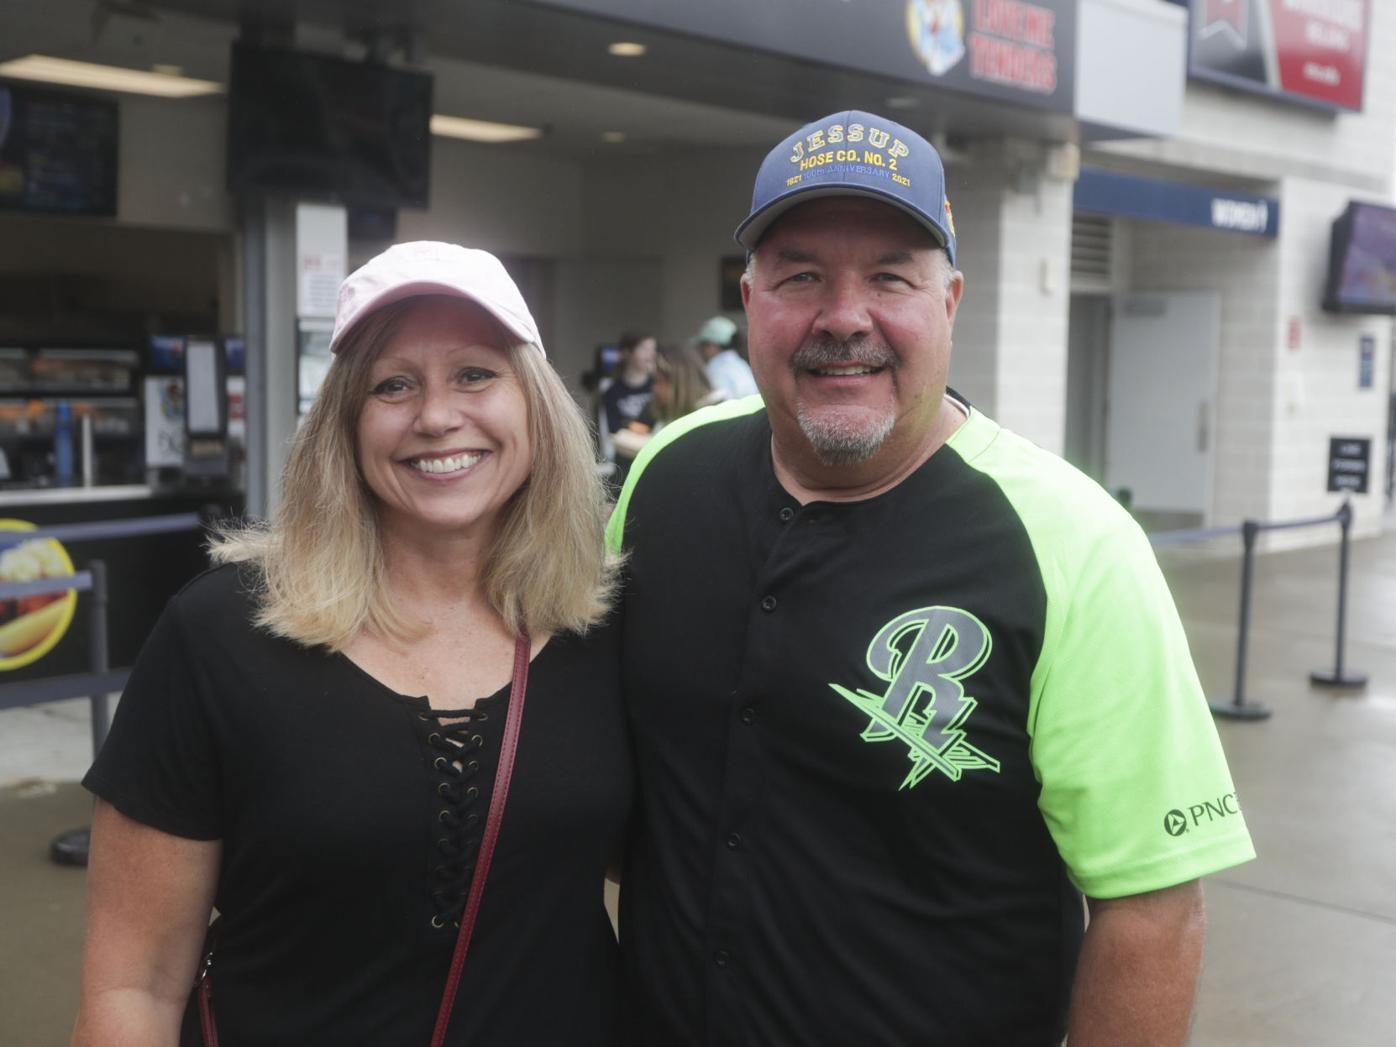 Out&About at the Scranton/Wilkes-Barre RailRiders vs. Lehigh Valley Iron Pigs game